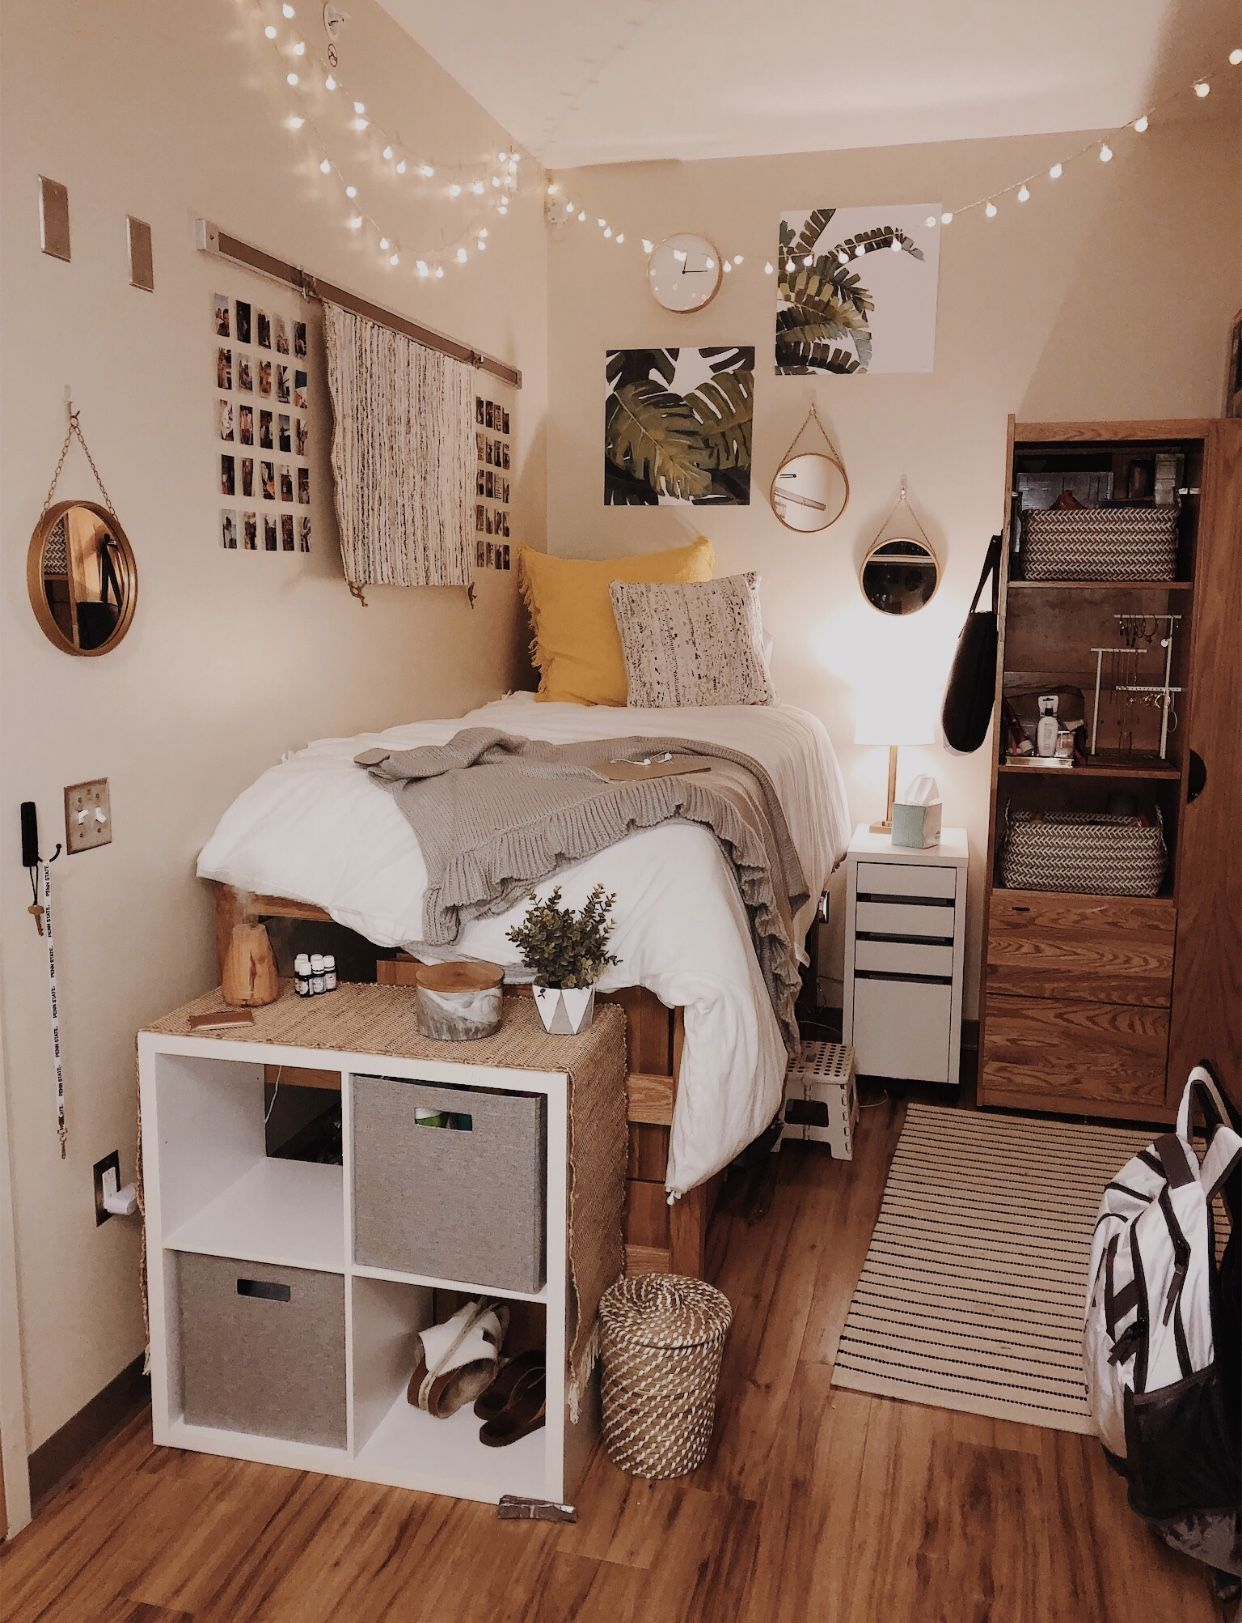 20 Recommended Small Bedroom Ideas 2019 Smallbedroomideas Small Bedroom Decor Ideas Bedroom Decor Fo College Bedroom Decor Cool Dorm Rooms Dorm Room Designs